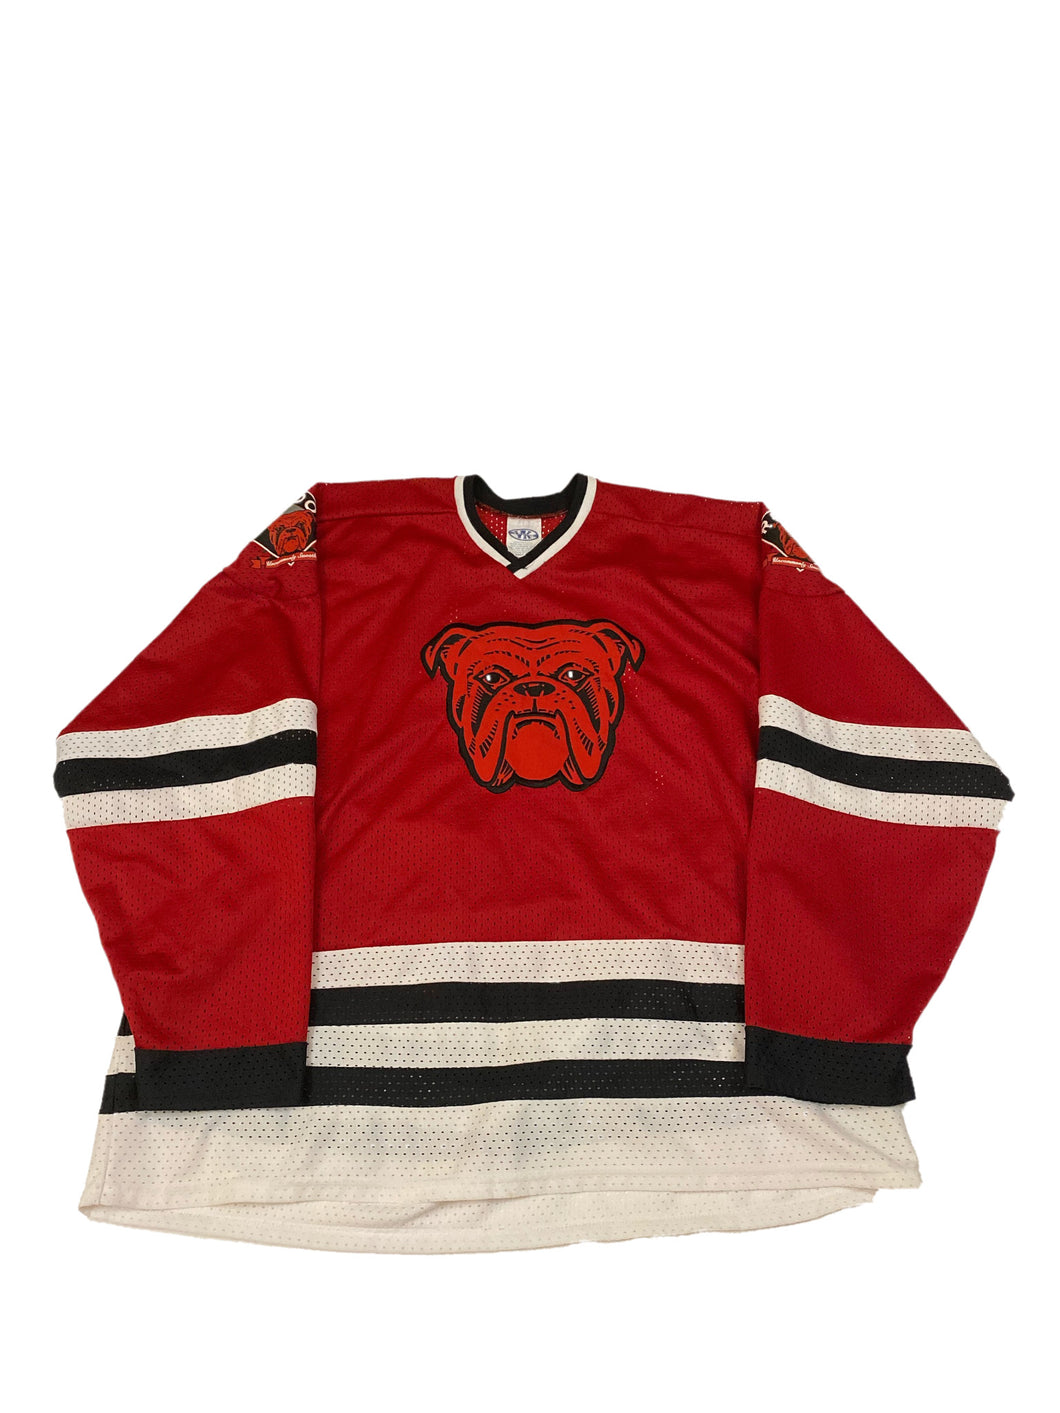 Red Dog Hockey Jersey